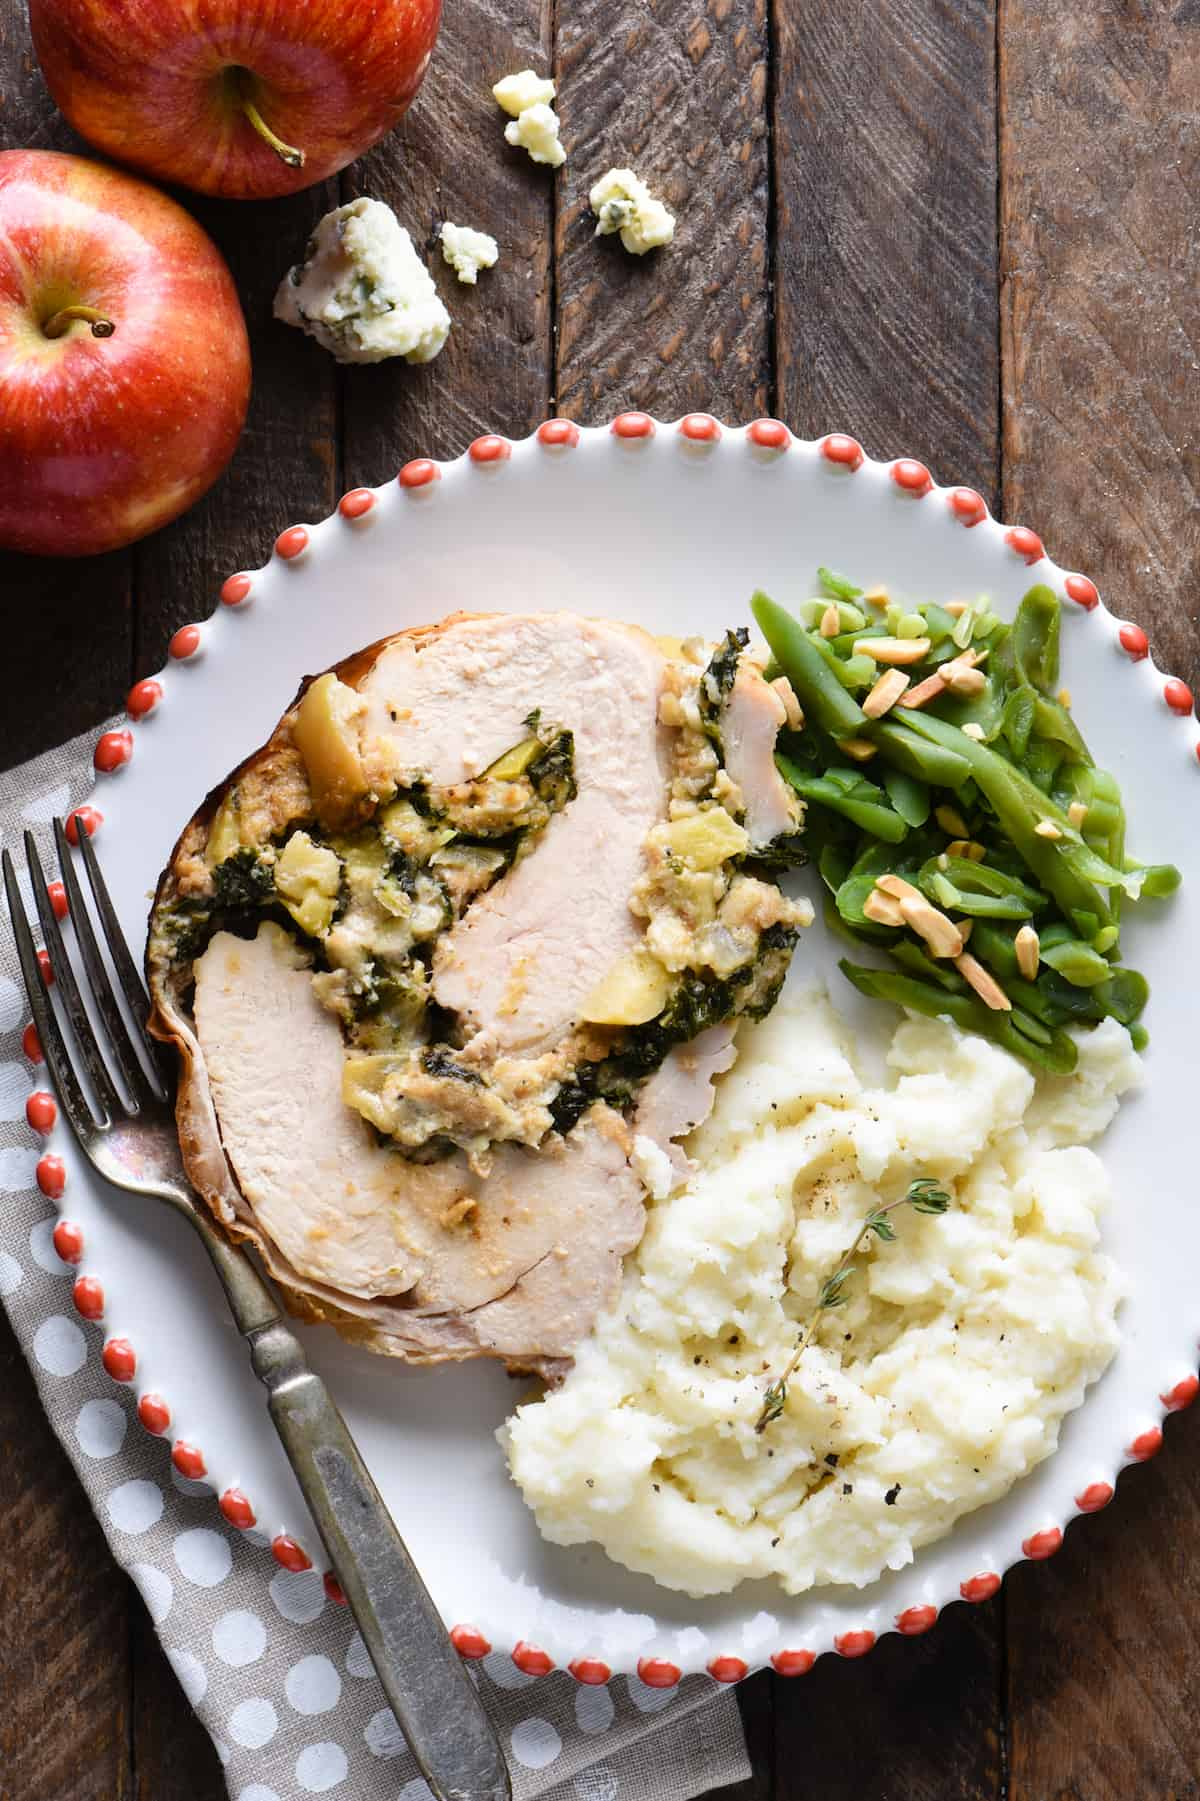 Not cooking for a huge crowd this Thanksgiving? This Blue Cheese & Apple Turkey Breast Roulade makes 6 servings, and can be prepped a day in advance. It is so packed with sweet and savory flavor that you might end up wishing you had made two! | foxeslovelemons.com